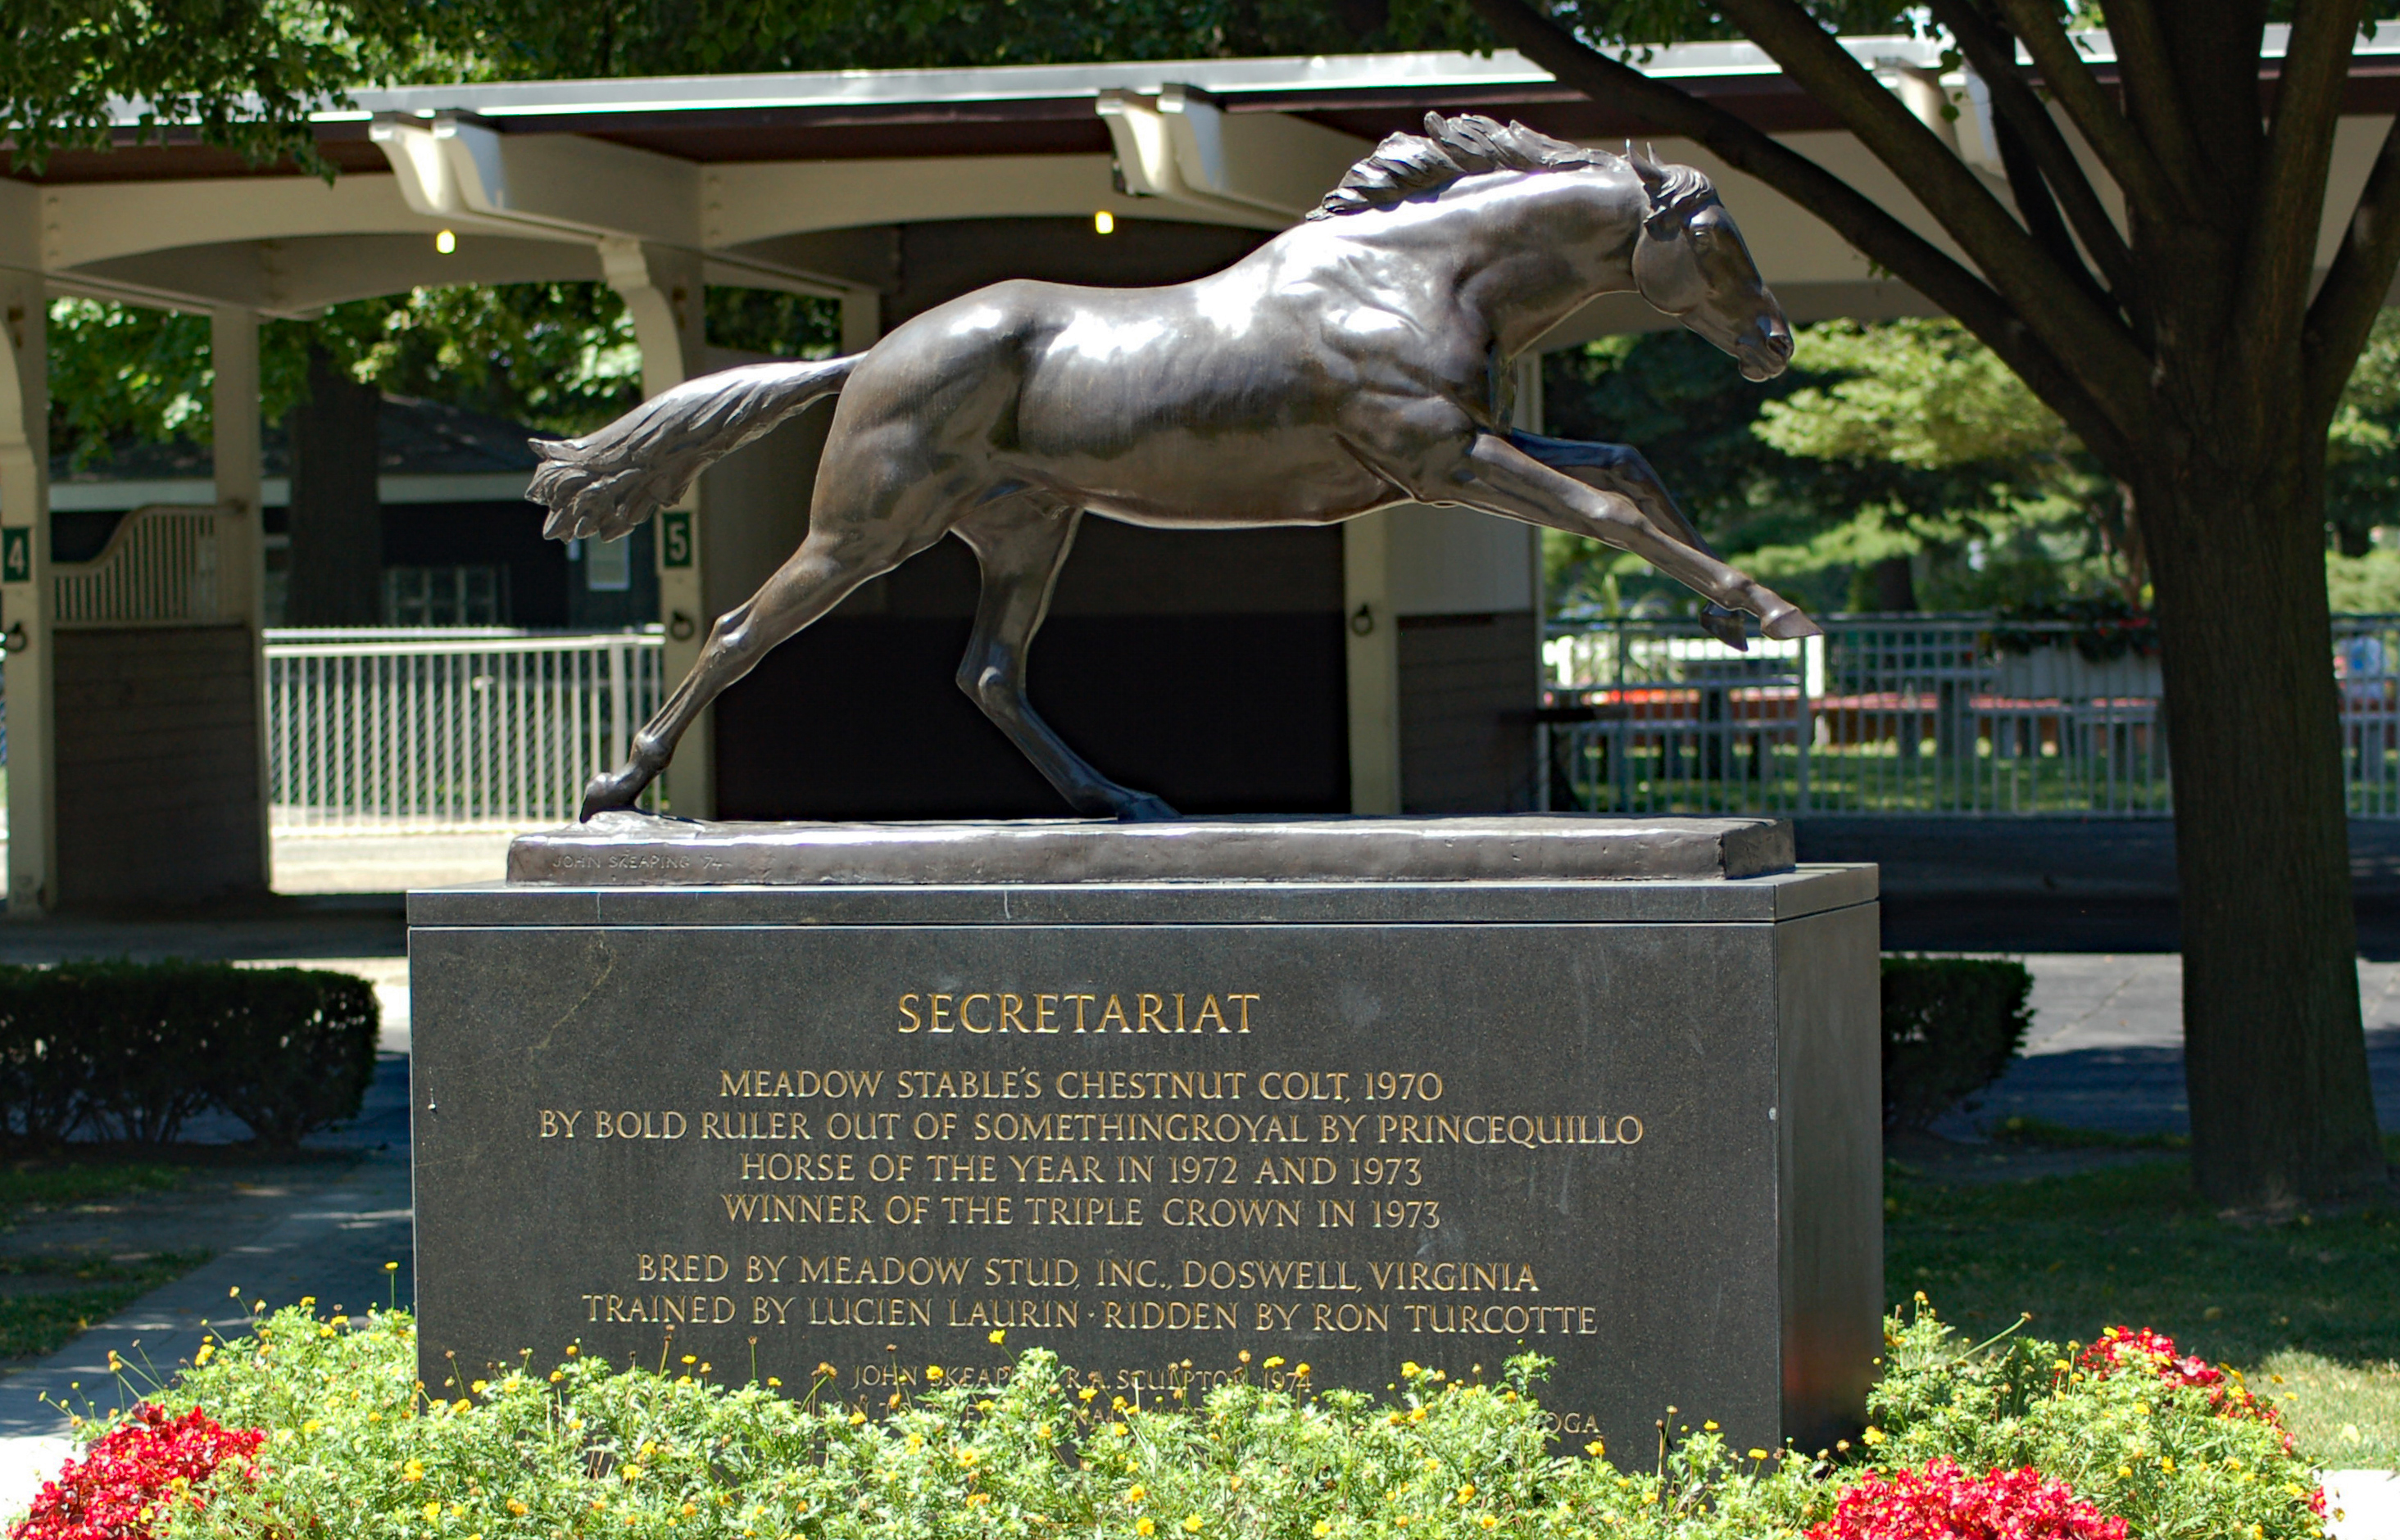 The Secretariat statue resides adjacent to the White Pine in Belmont's paddockJPG